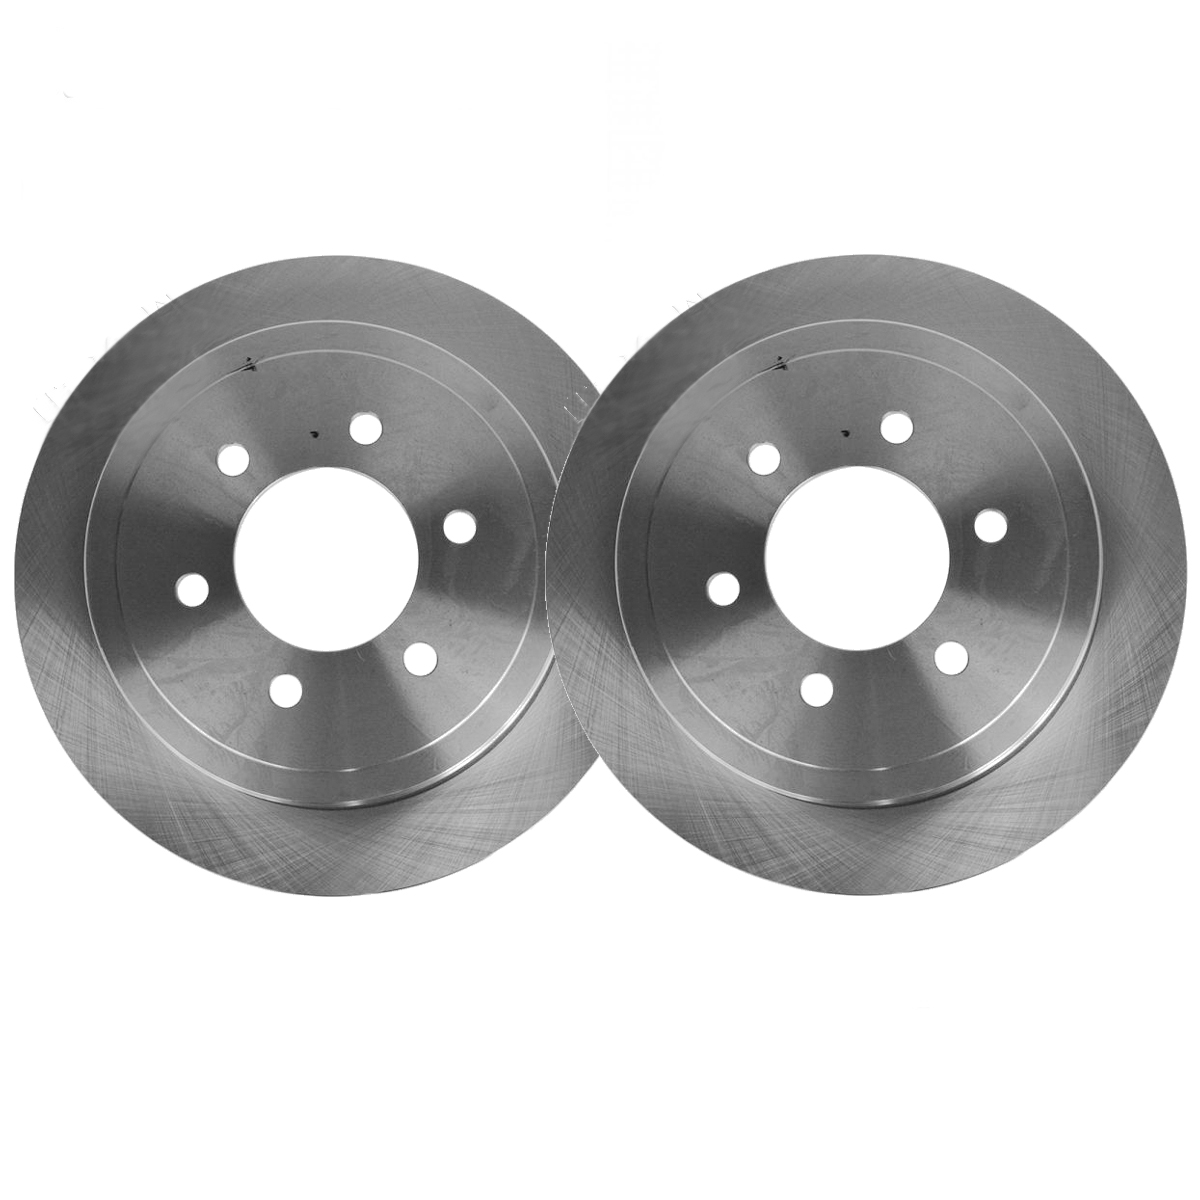 Drilled Slotted Rear Brake Rotors #R-54100- Ford & Lincoln